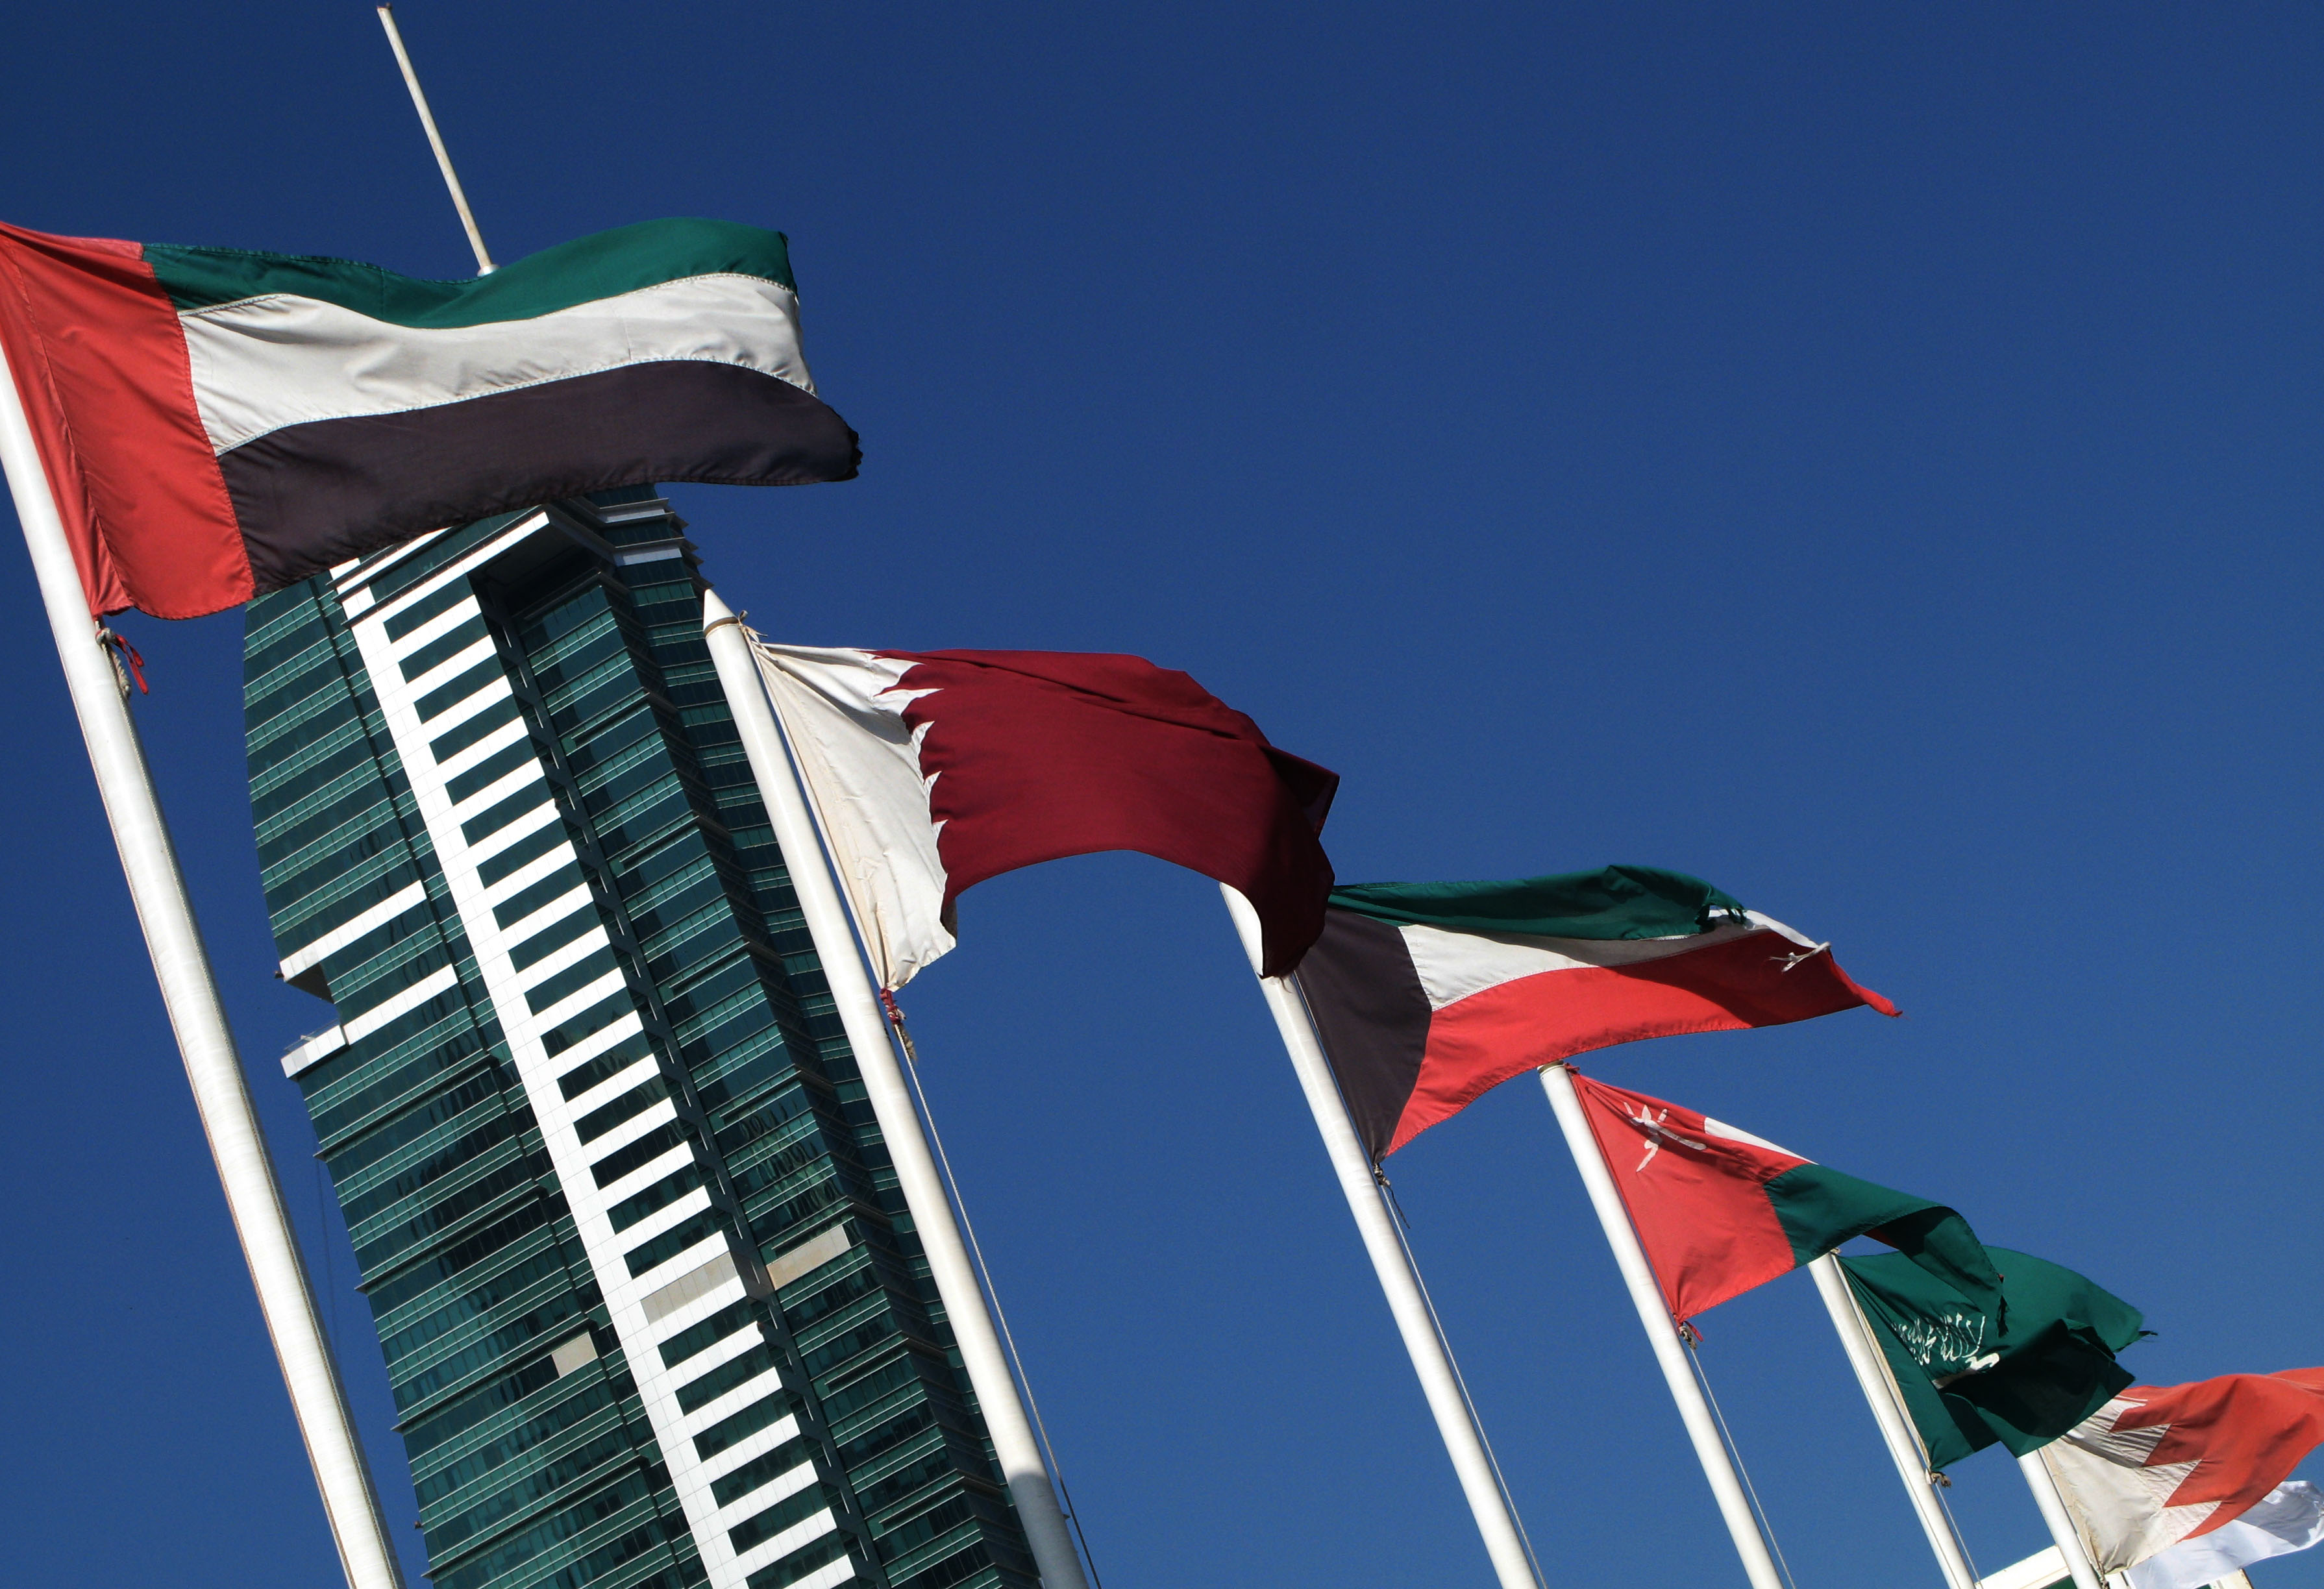 Flags of six Gulf nations - UAE, Qatar, Kuwait, Oman, Saudi Arabia, Bahrain